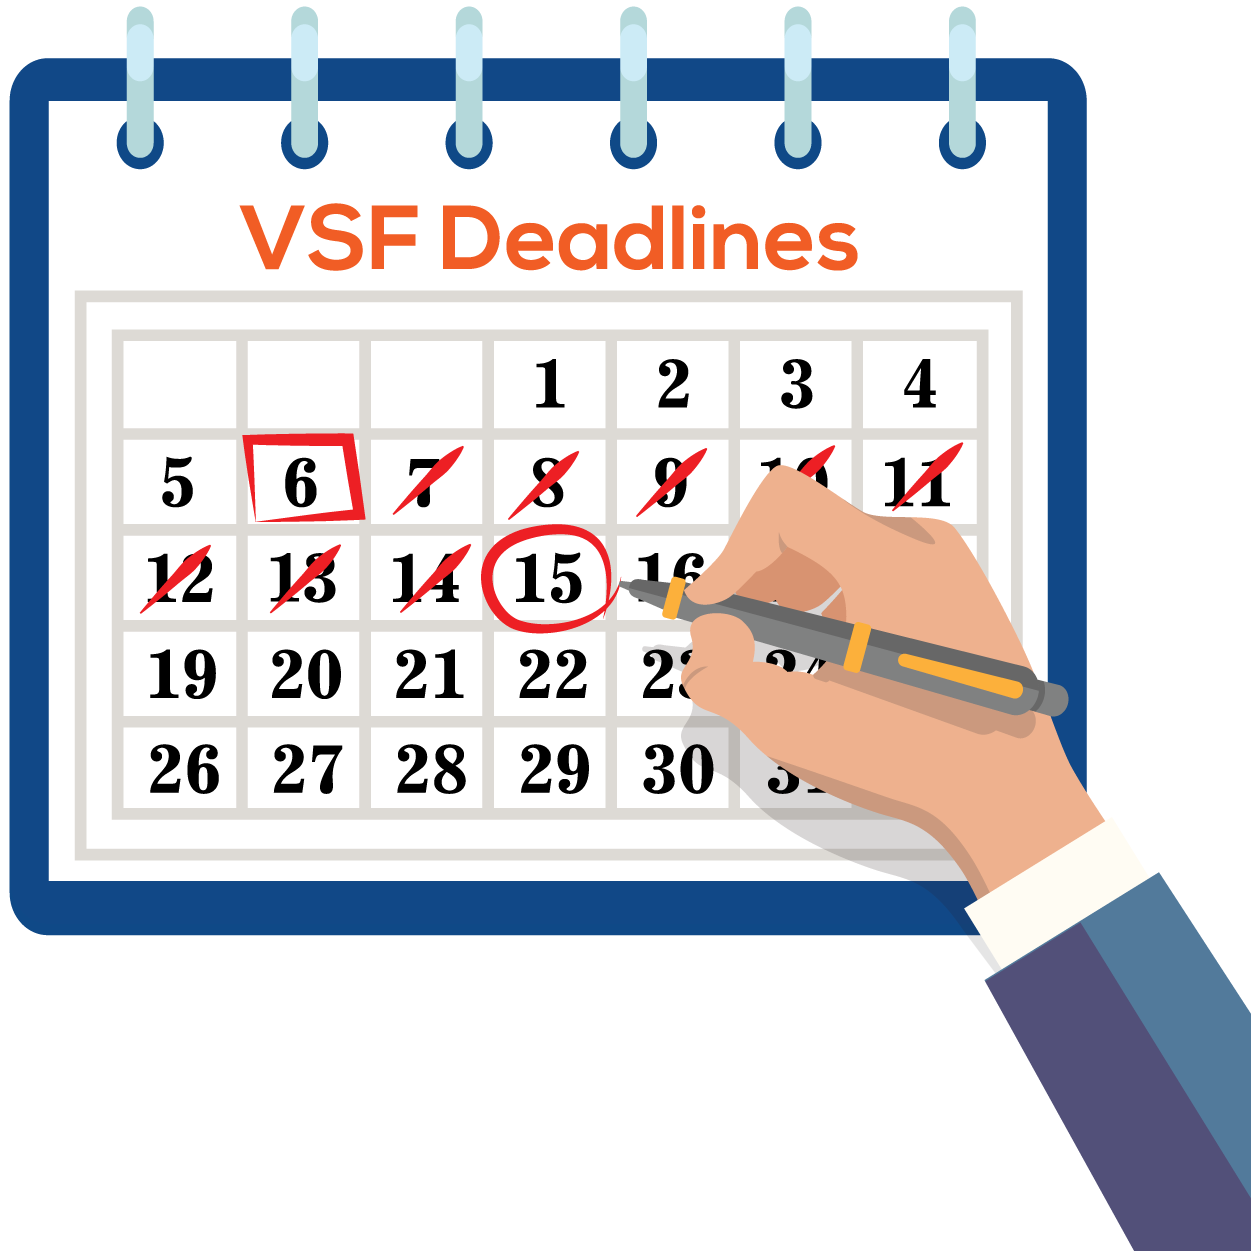 VSF DEADLINE CALCULATOR